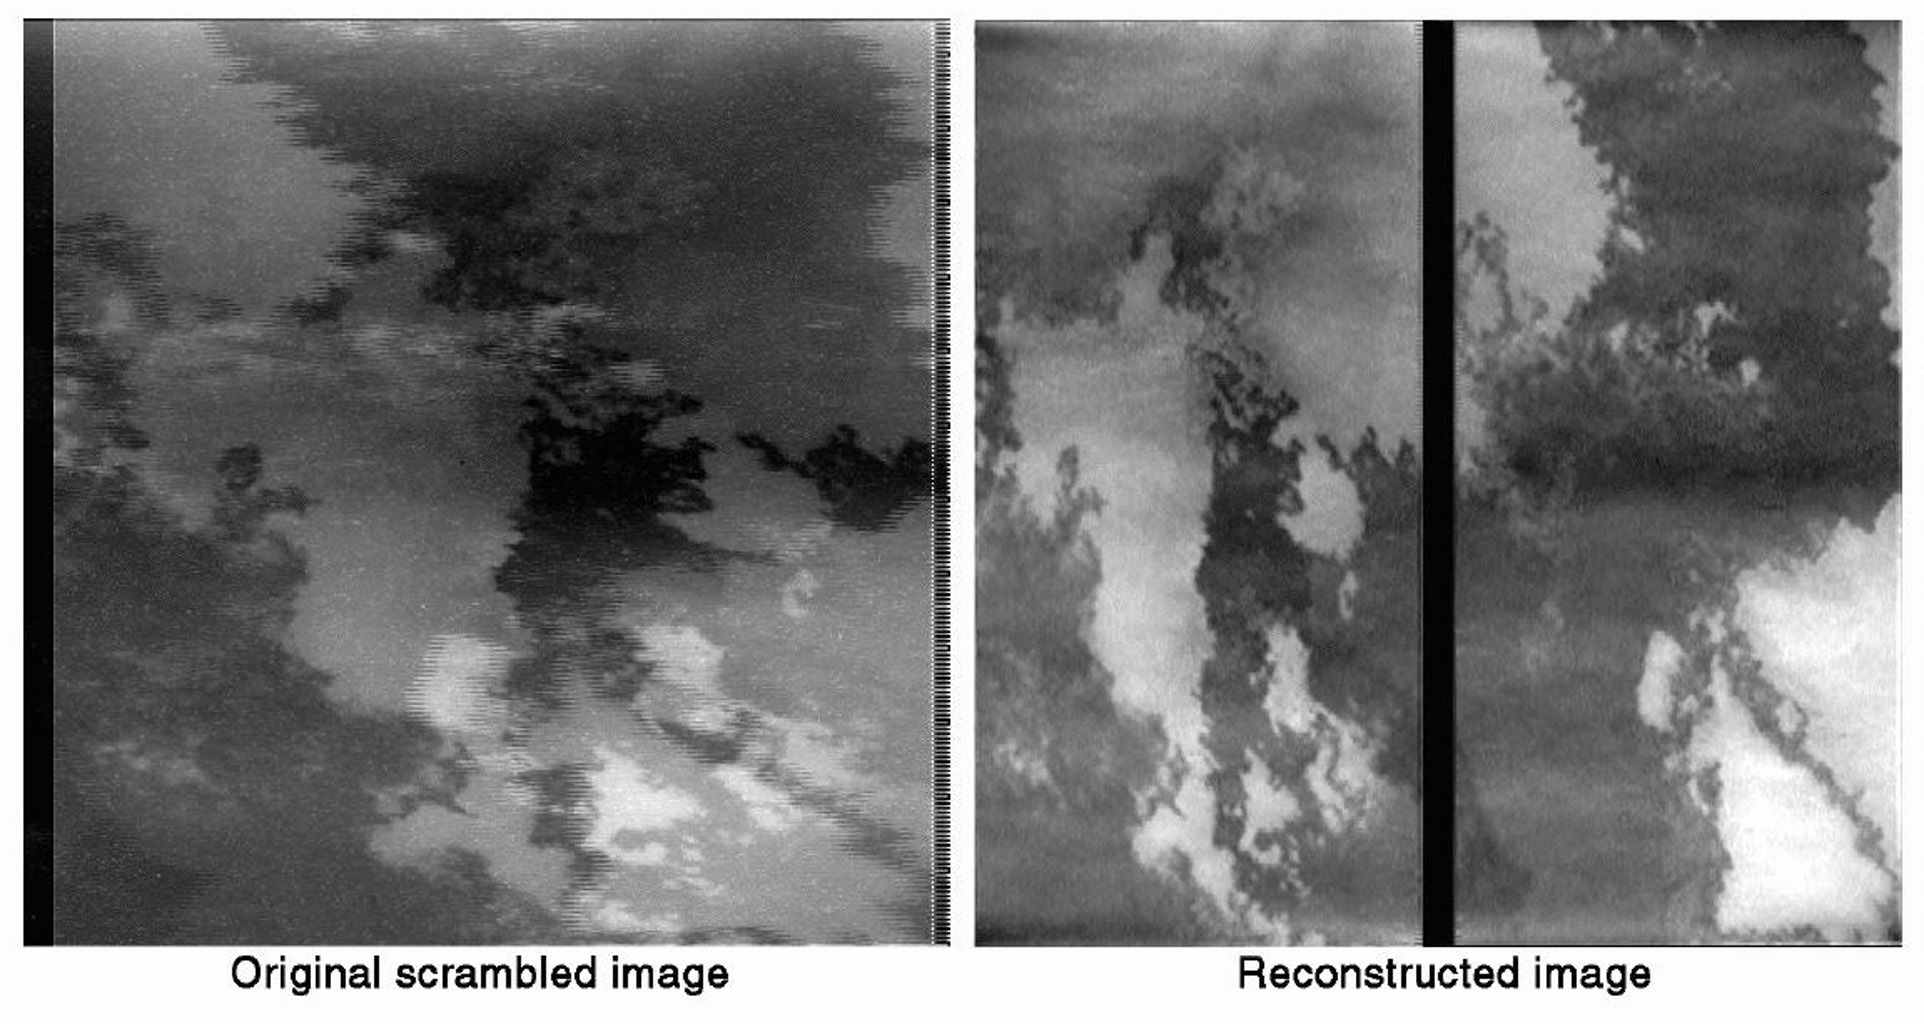 This pair of images depicts the magic worked by JPL engineers to repair radiation damage to images taken by NASA's Galileo spacecraft camera during an October 10 close flyby of Jupiter's volcanic moon Io.